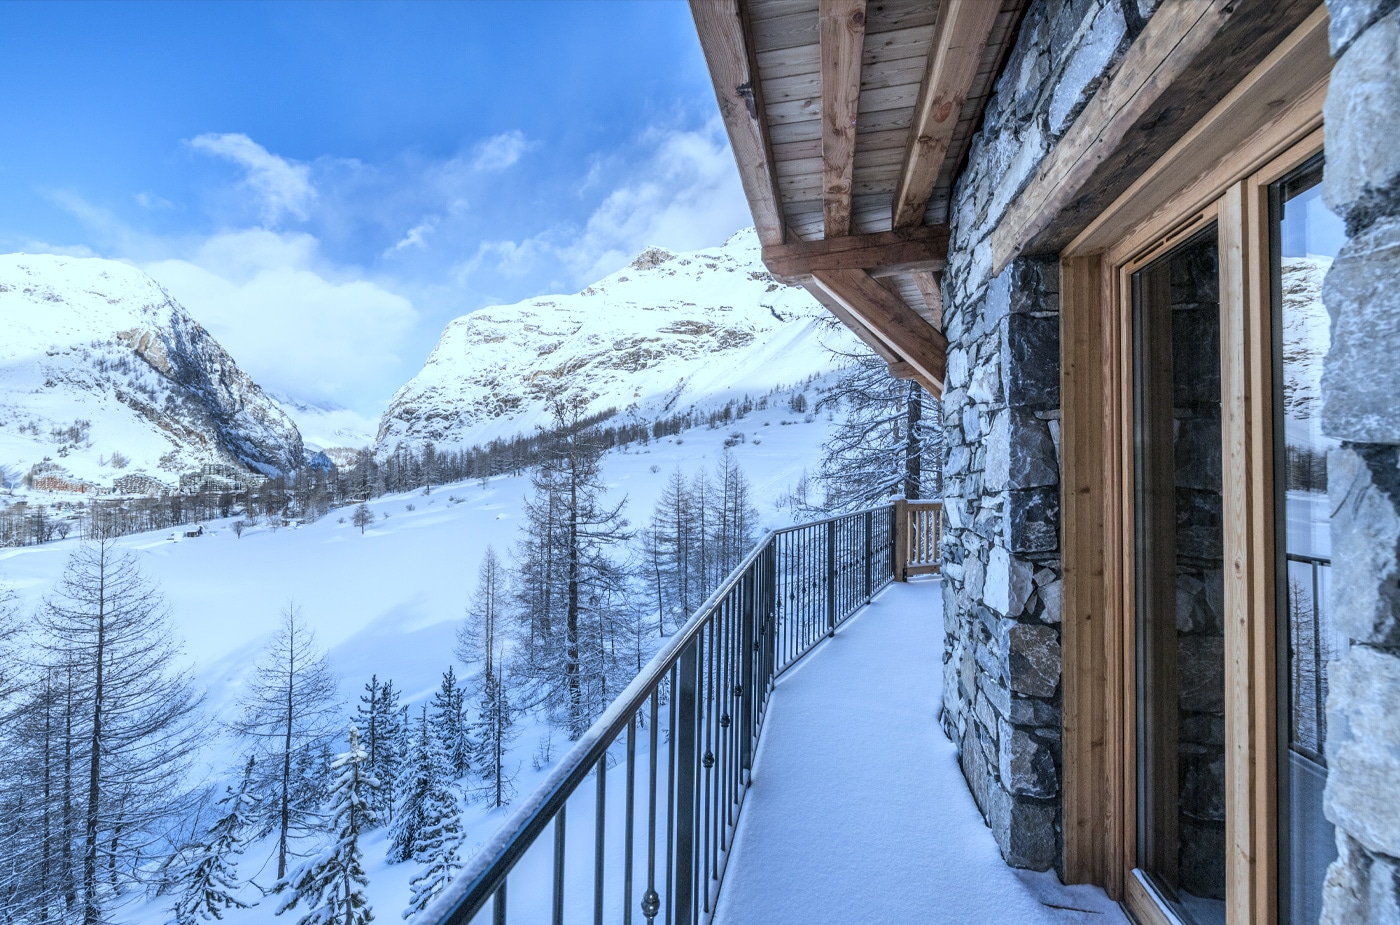 chalet-ovalala-val-disere-balcon-bedrooms